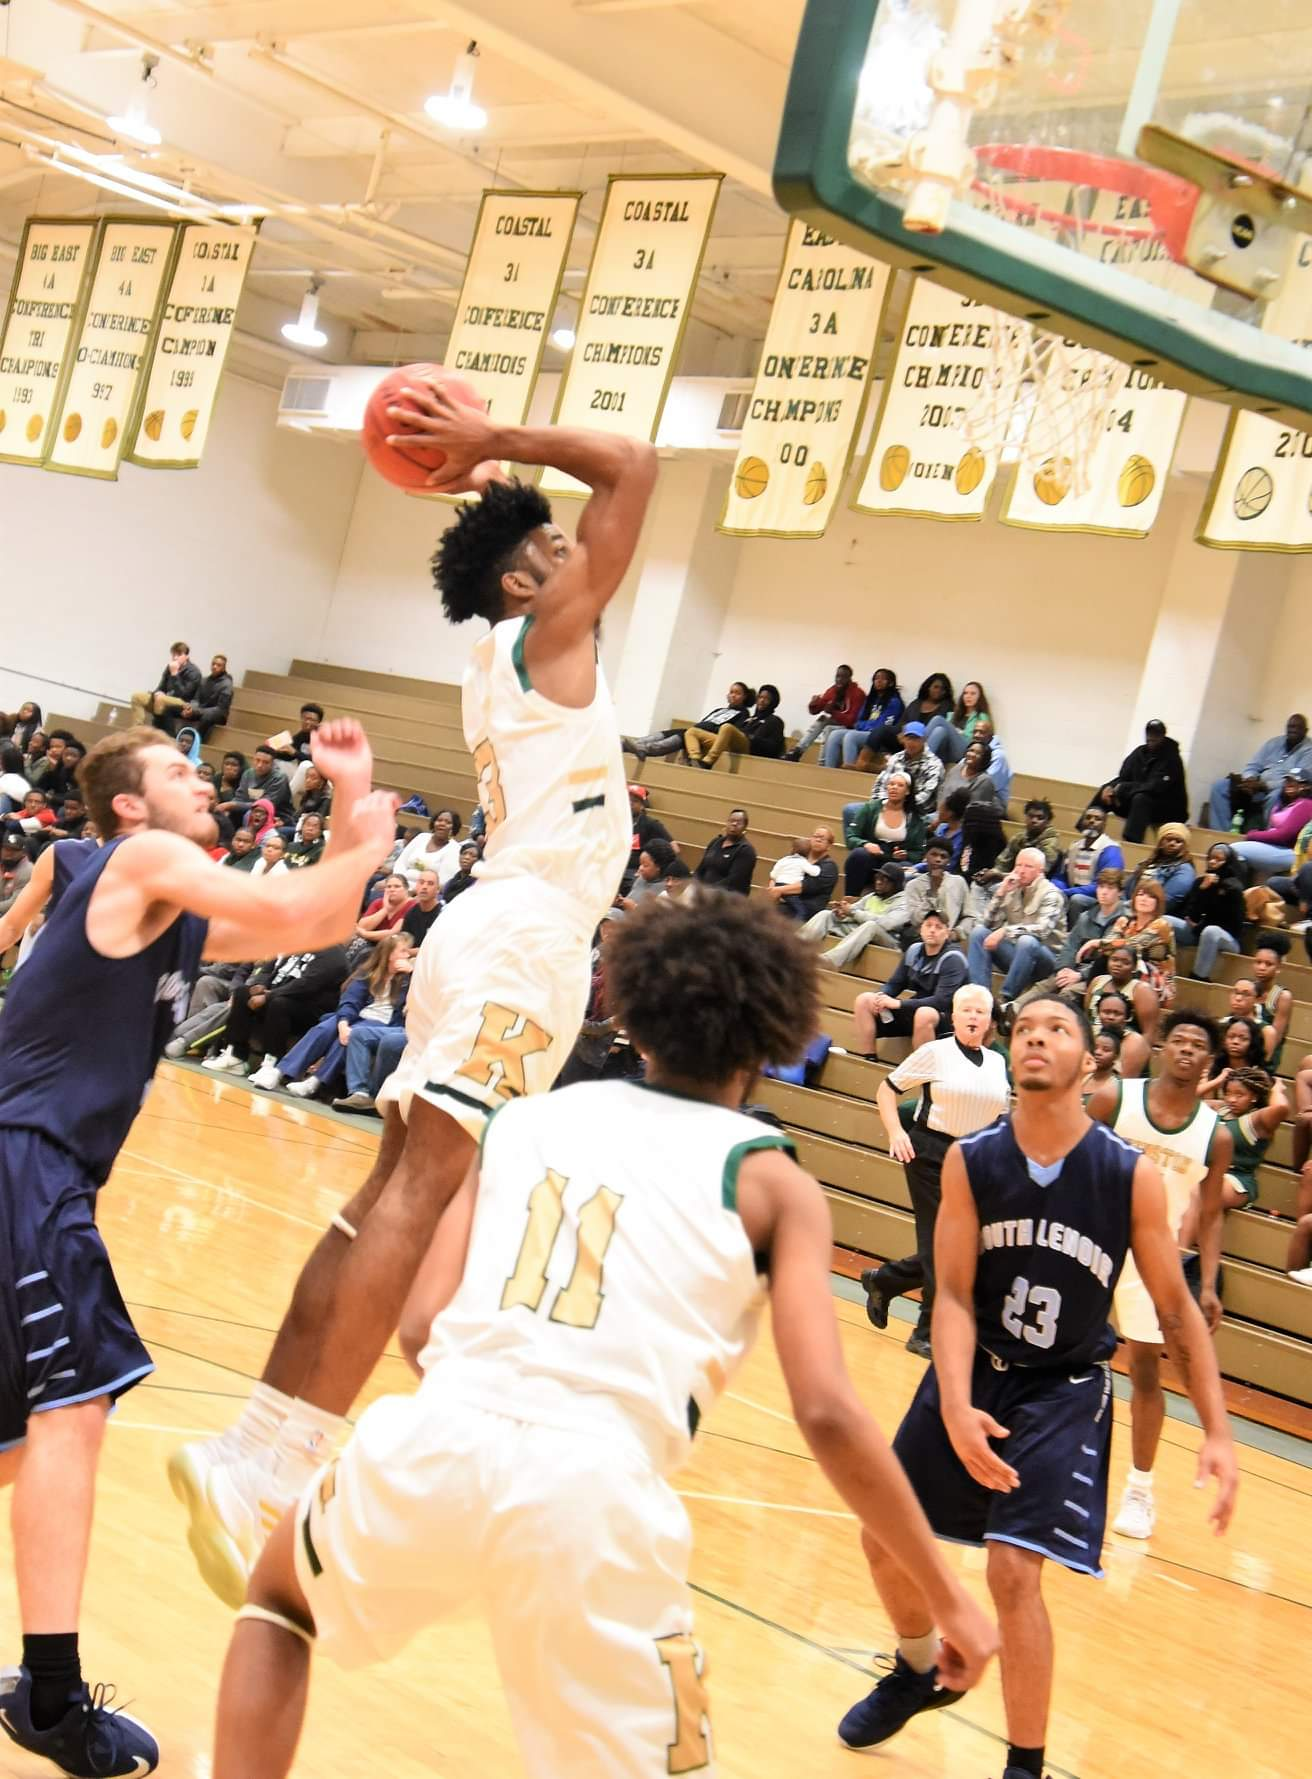 """Kinston's Dontrez Styles prepares to slam one home against South Lenoir in Monday's contest. Photo by William """"Bud"""" Hardy / Neuse News"""